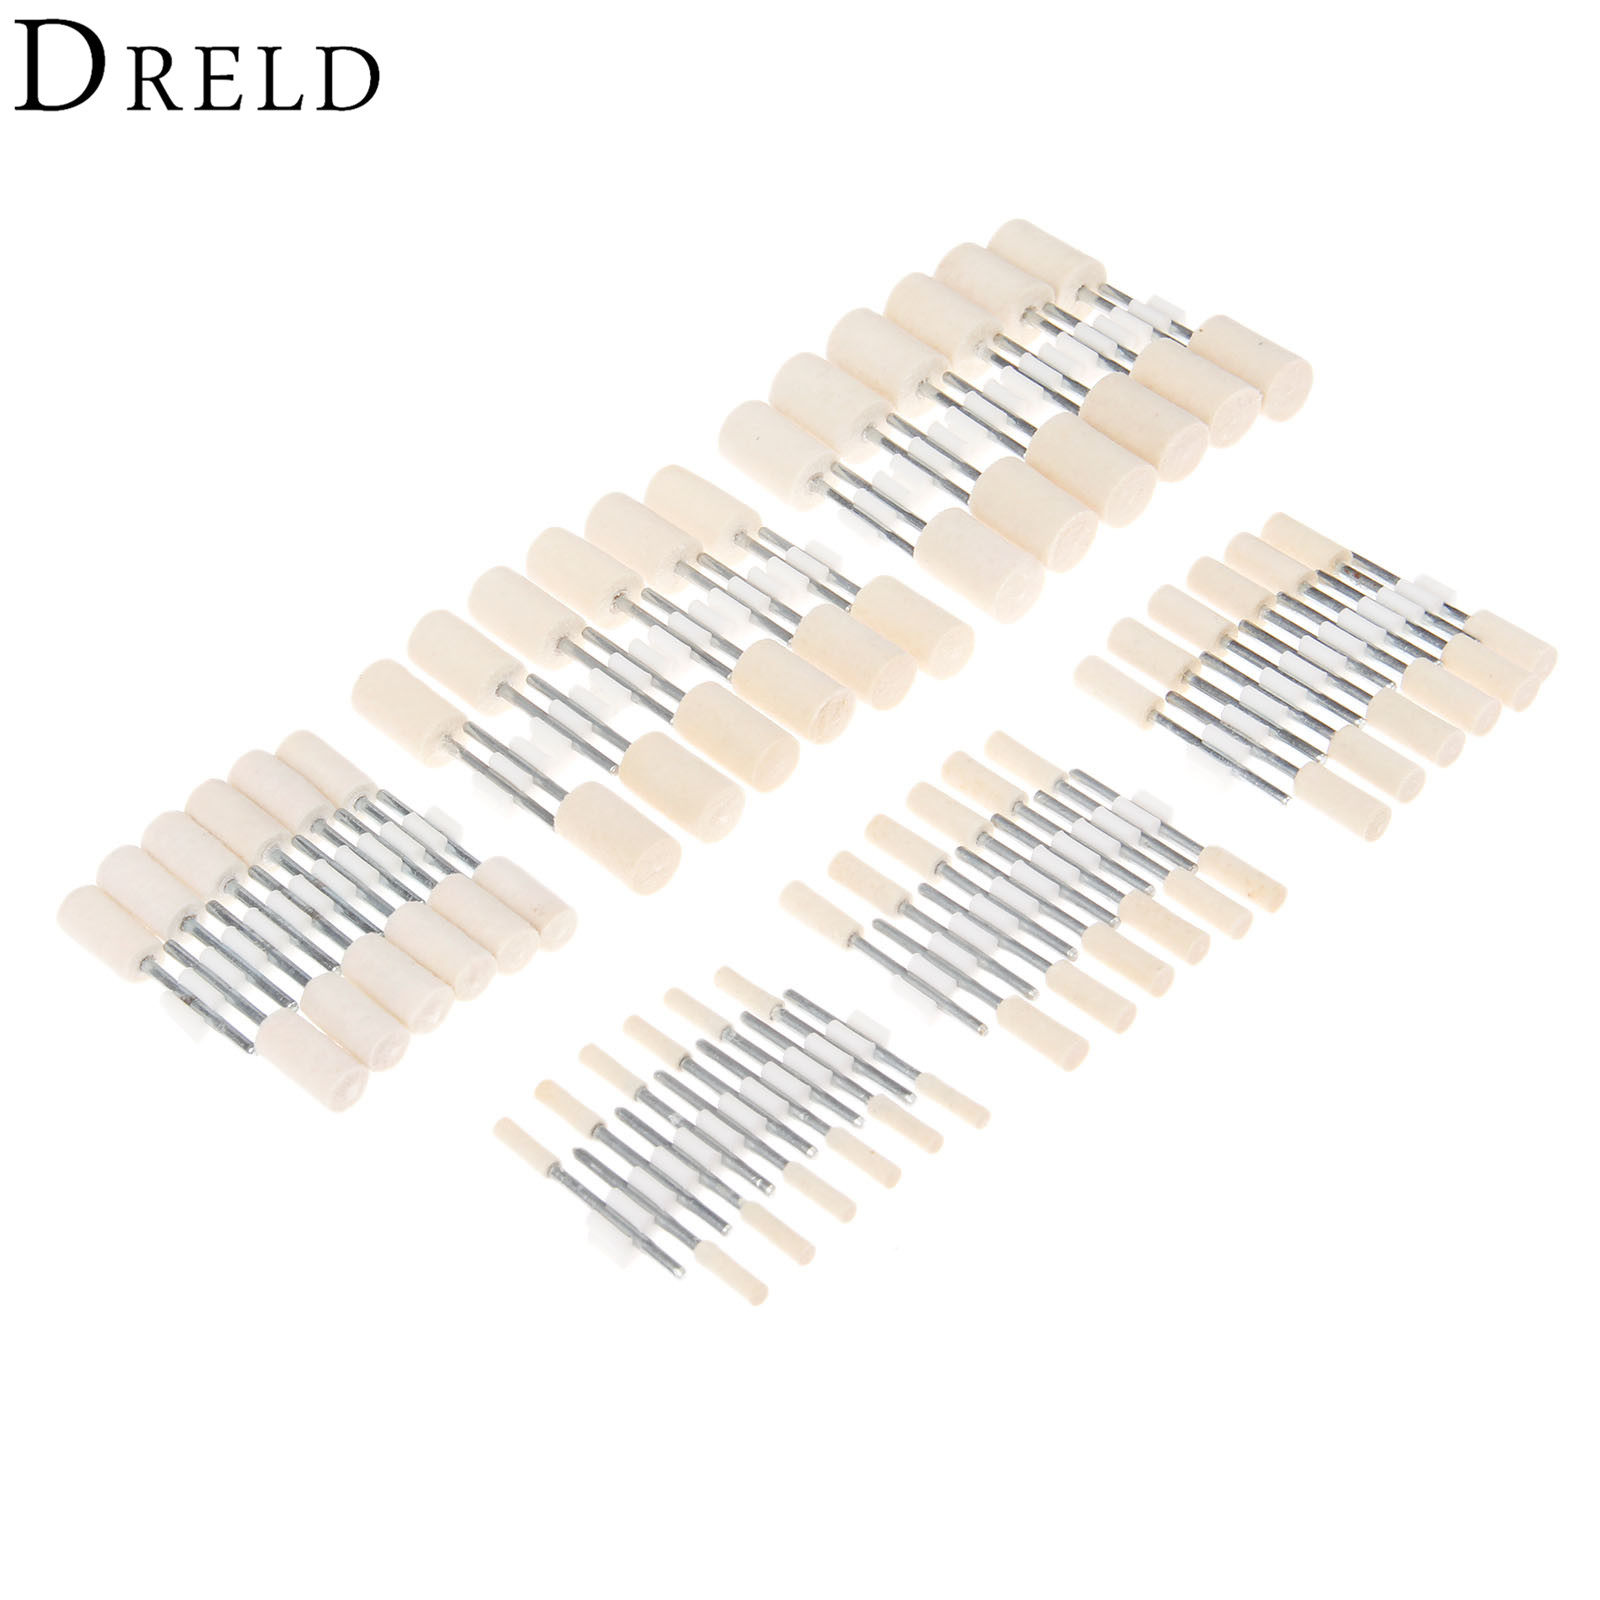 DRELD 12Pcs Dremel Accessories Wool Grinding Head Jewelry Metal Surface Buffing Polishing Wheel For Rotary Tools 2.35mm Shank